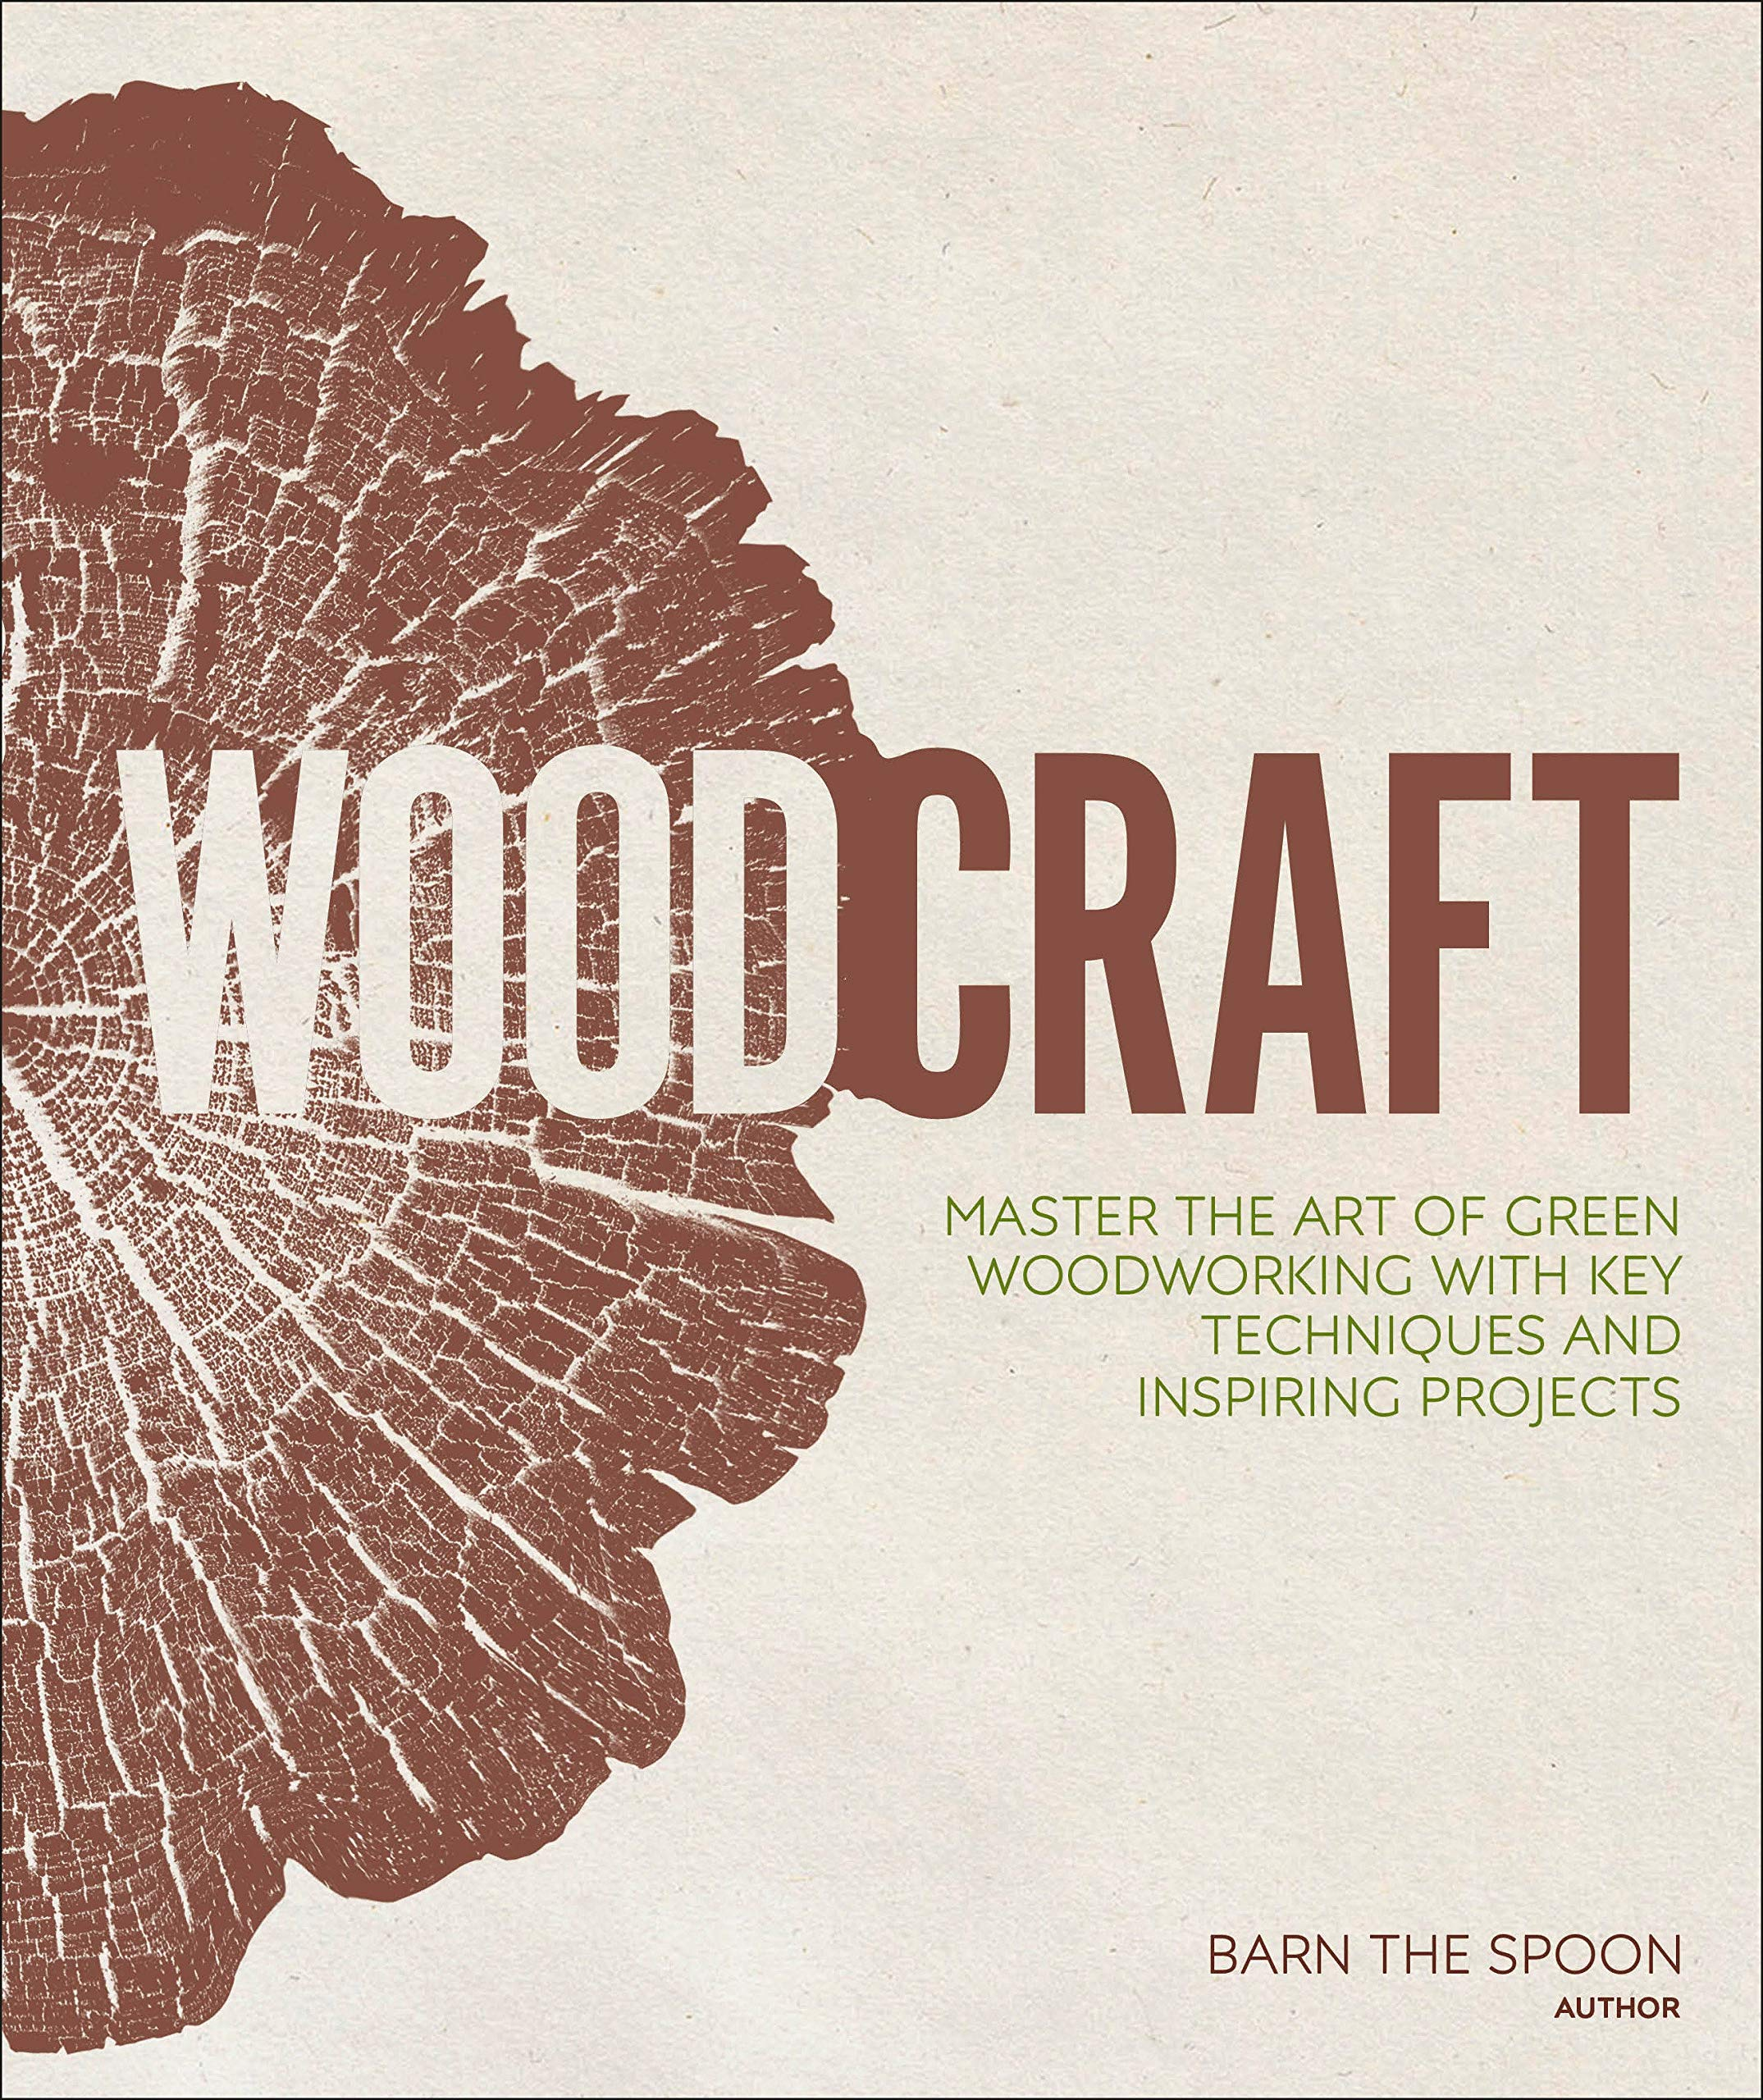 Woodcraft Master The Art Of Green Woodworking With Key Techniques And Inspiring Projects Barn The Spoon 9781465479785 Amazon Com Books